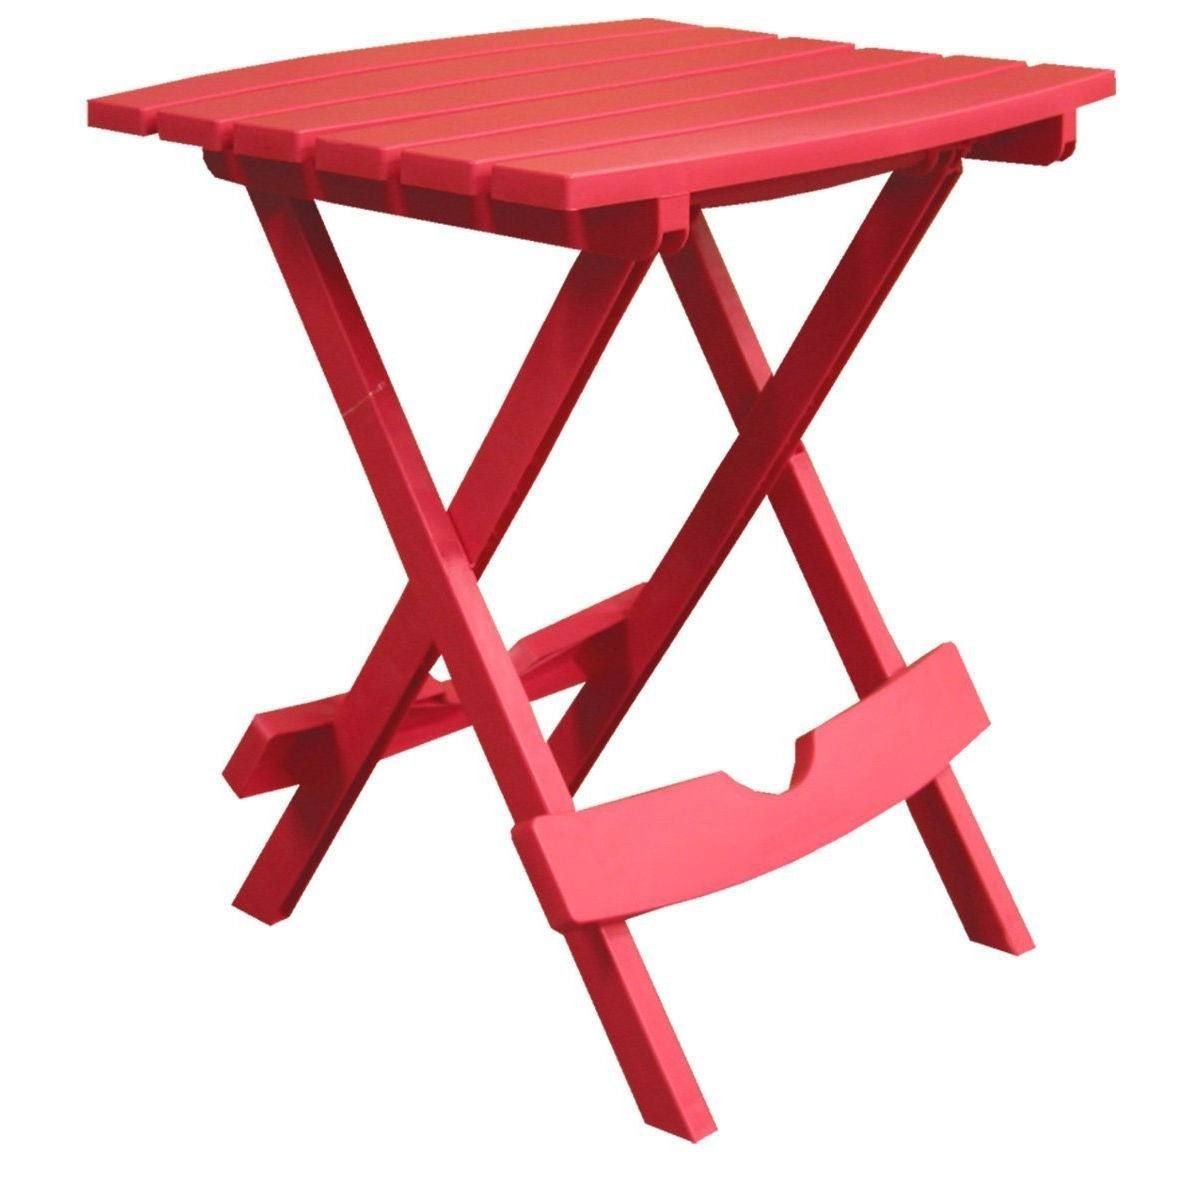 Folding side table for outdoor patio lawn in cherry red durable